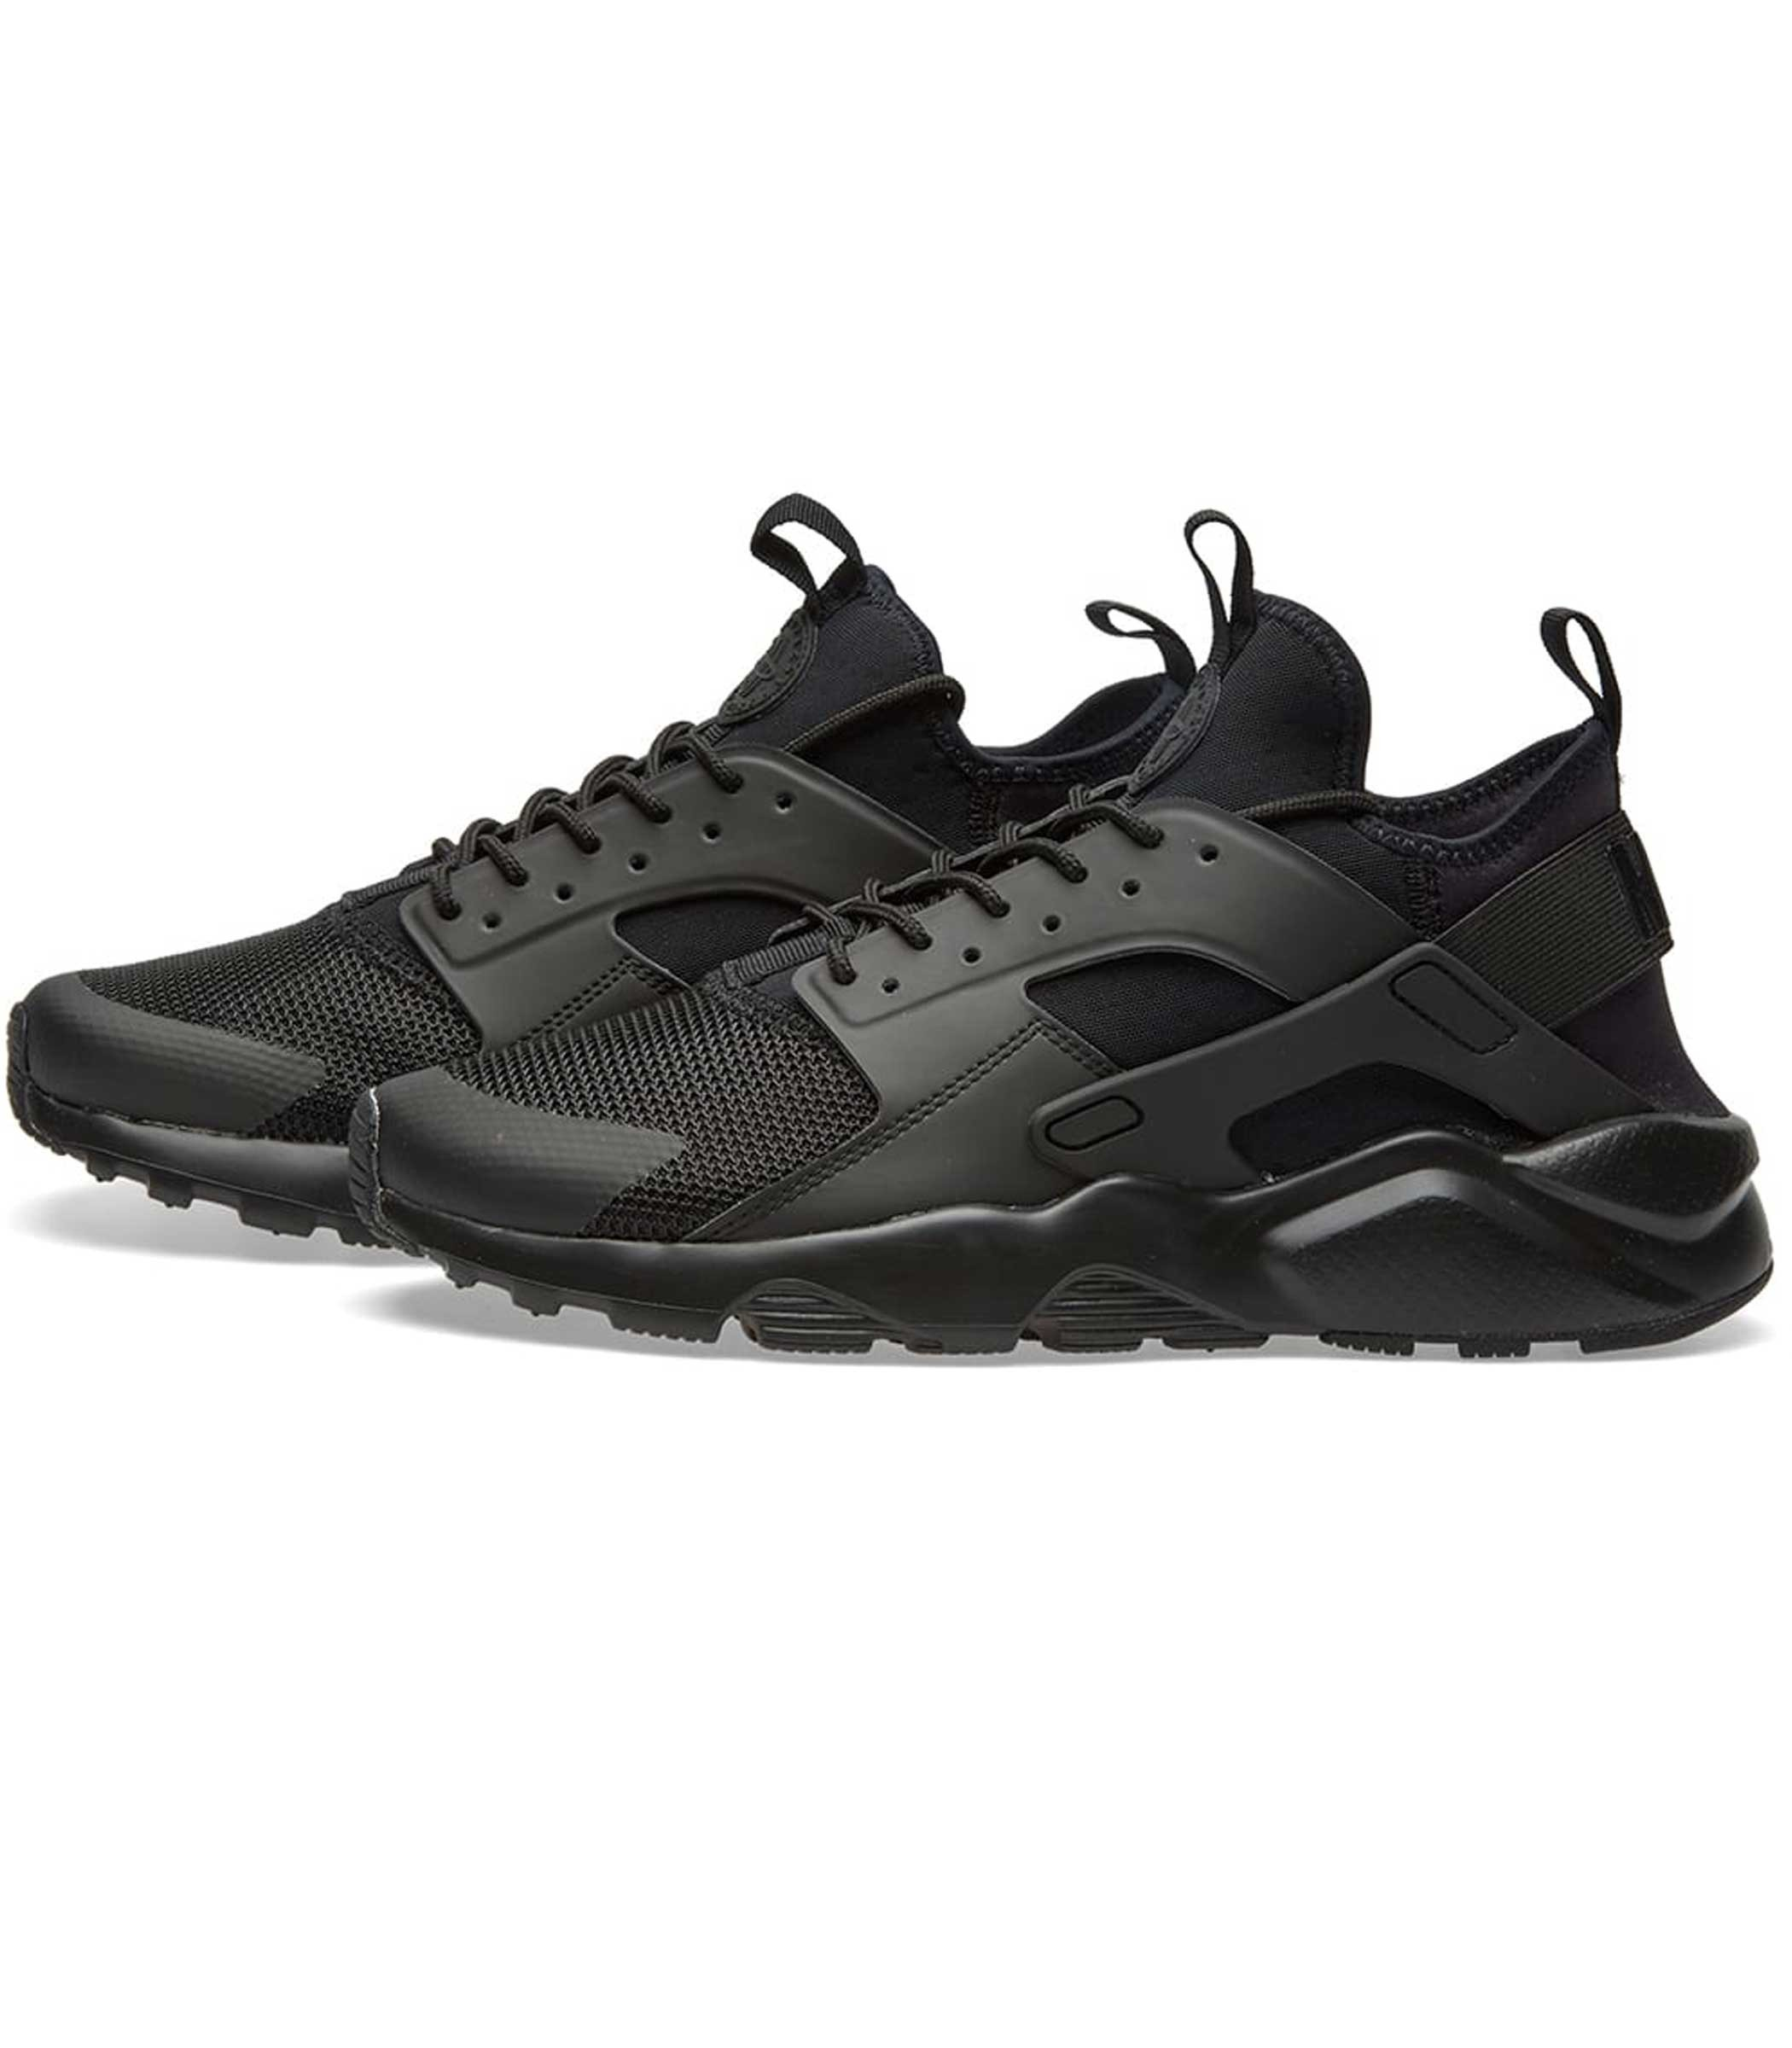 Nike Off66 Uomo Huarache Ultra Air Scontate Sconti Acquista